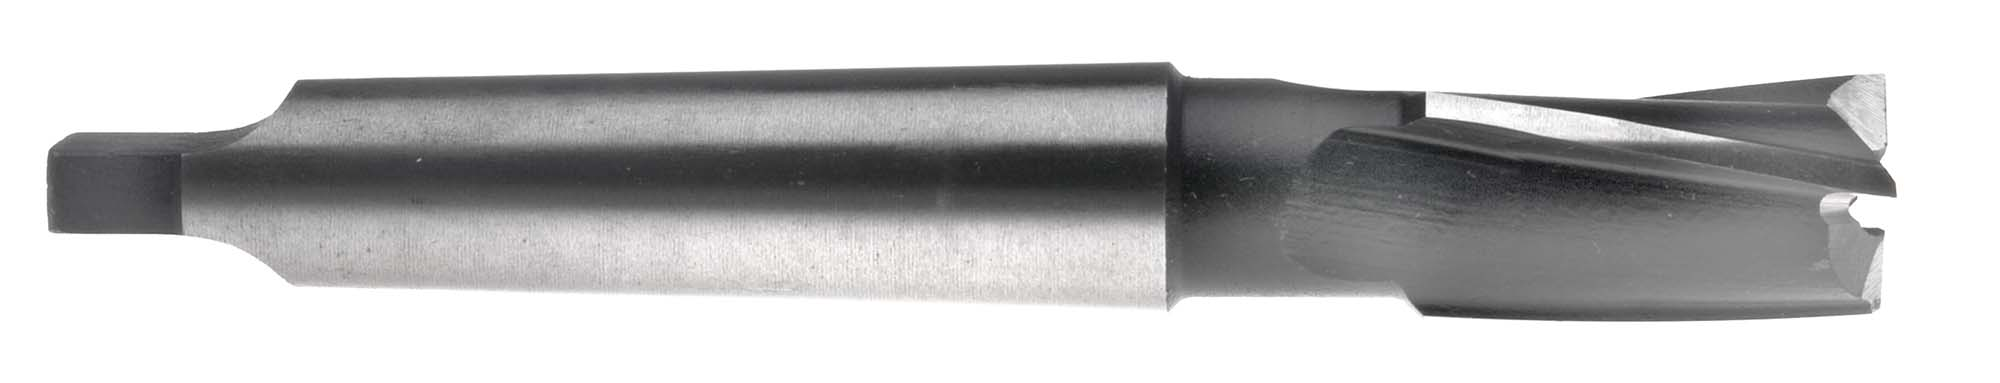 "2-5/8"" Taper Shank Counterbore, Interchangeable Pilot Type, High Speed Steel"